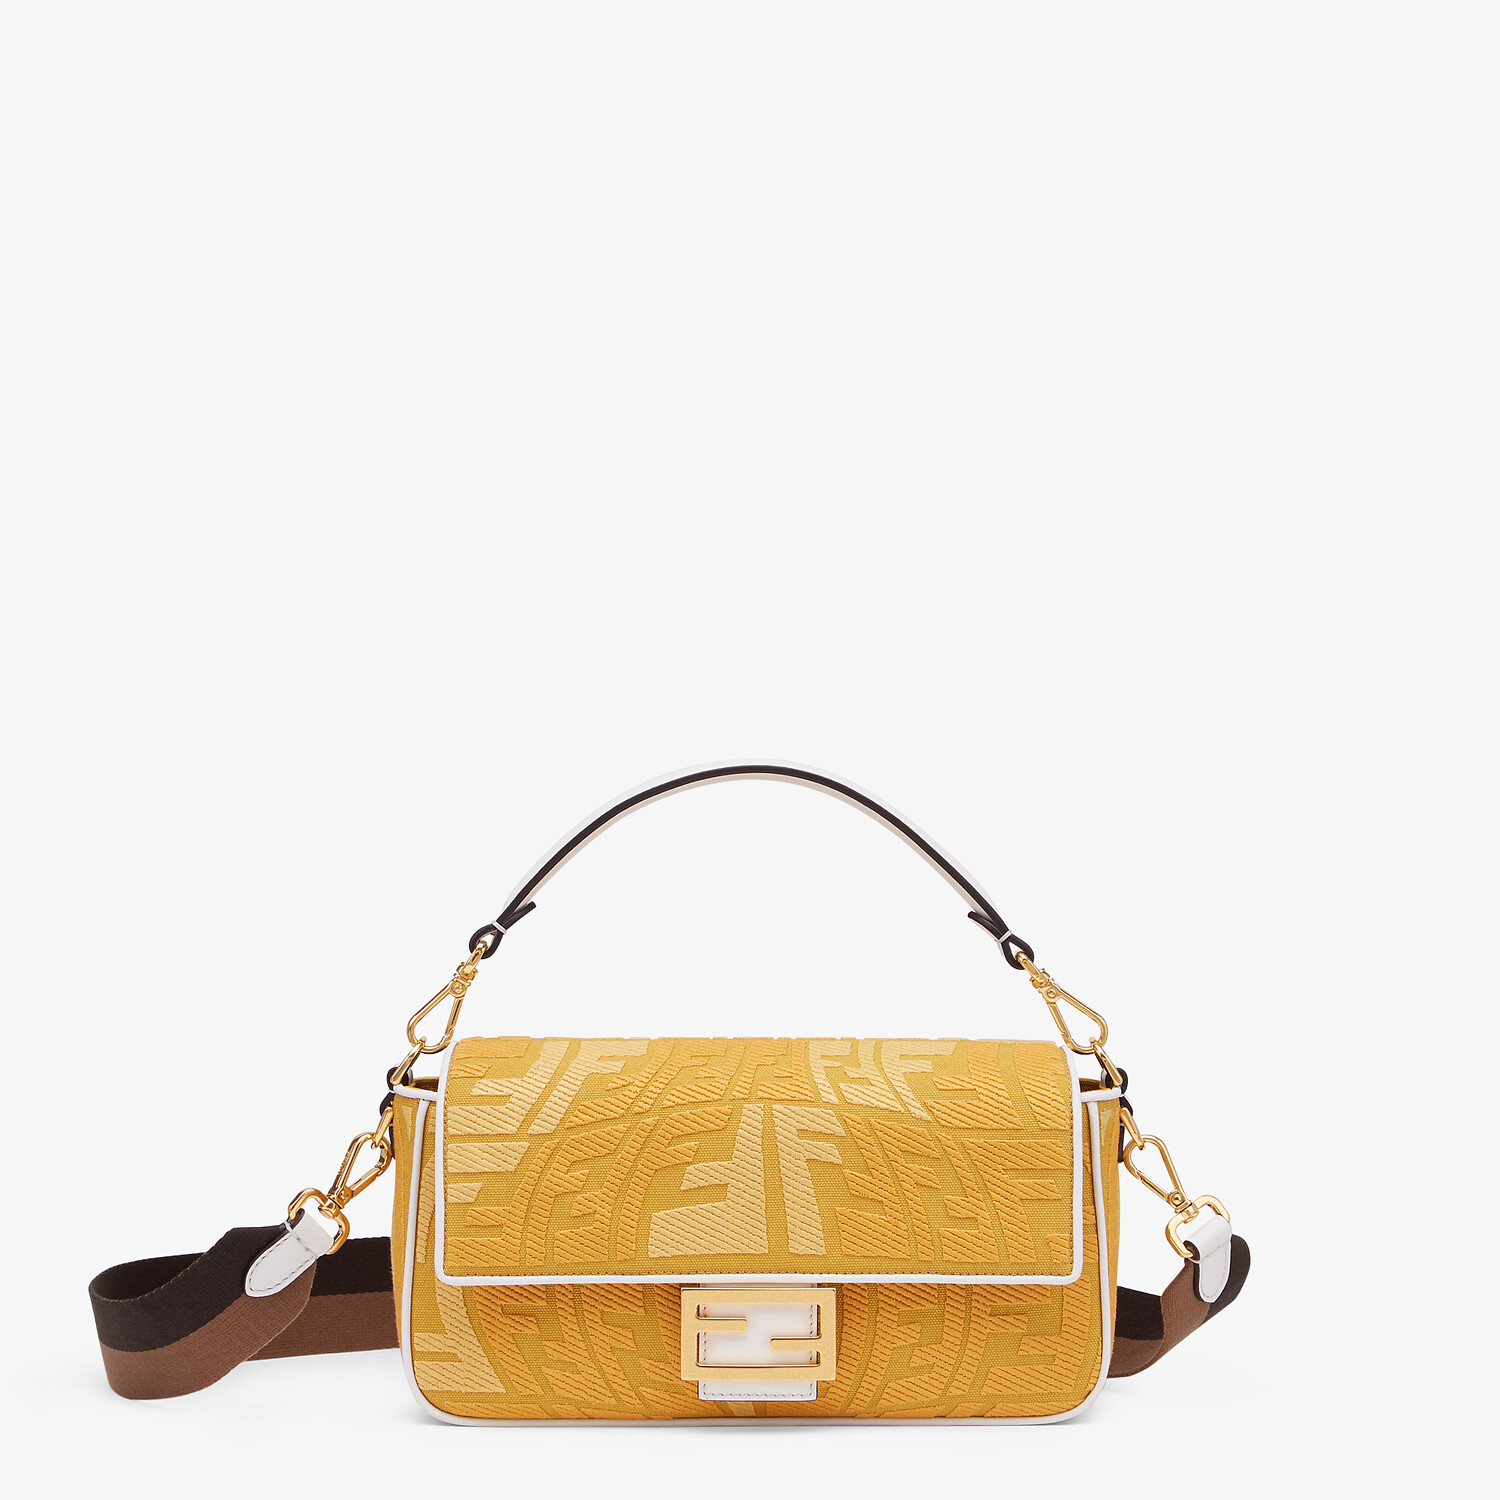 FENDI BAGUETTE - Embroidered yellow canvas bag - view 1 detail